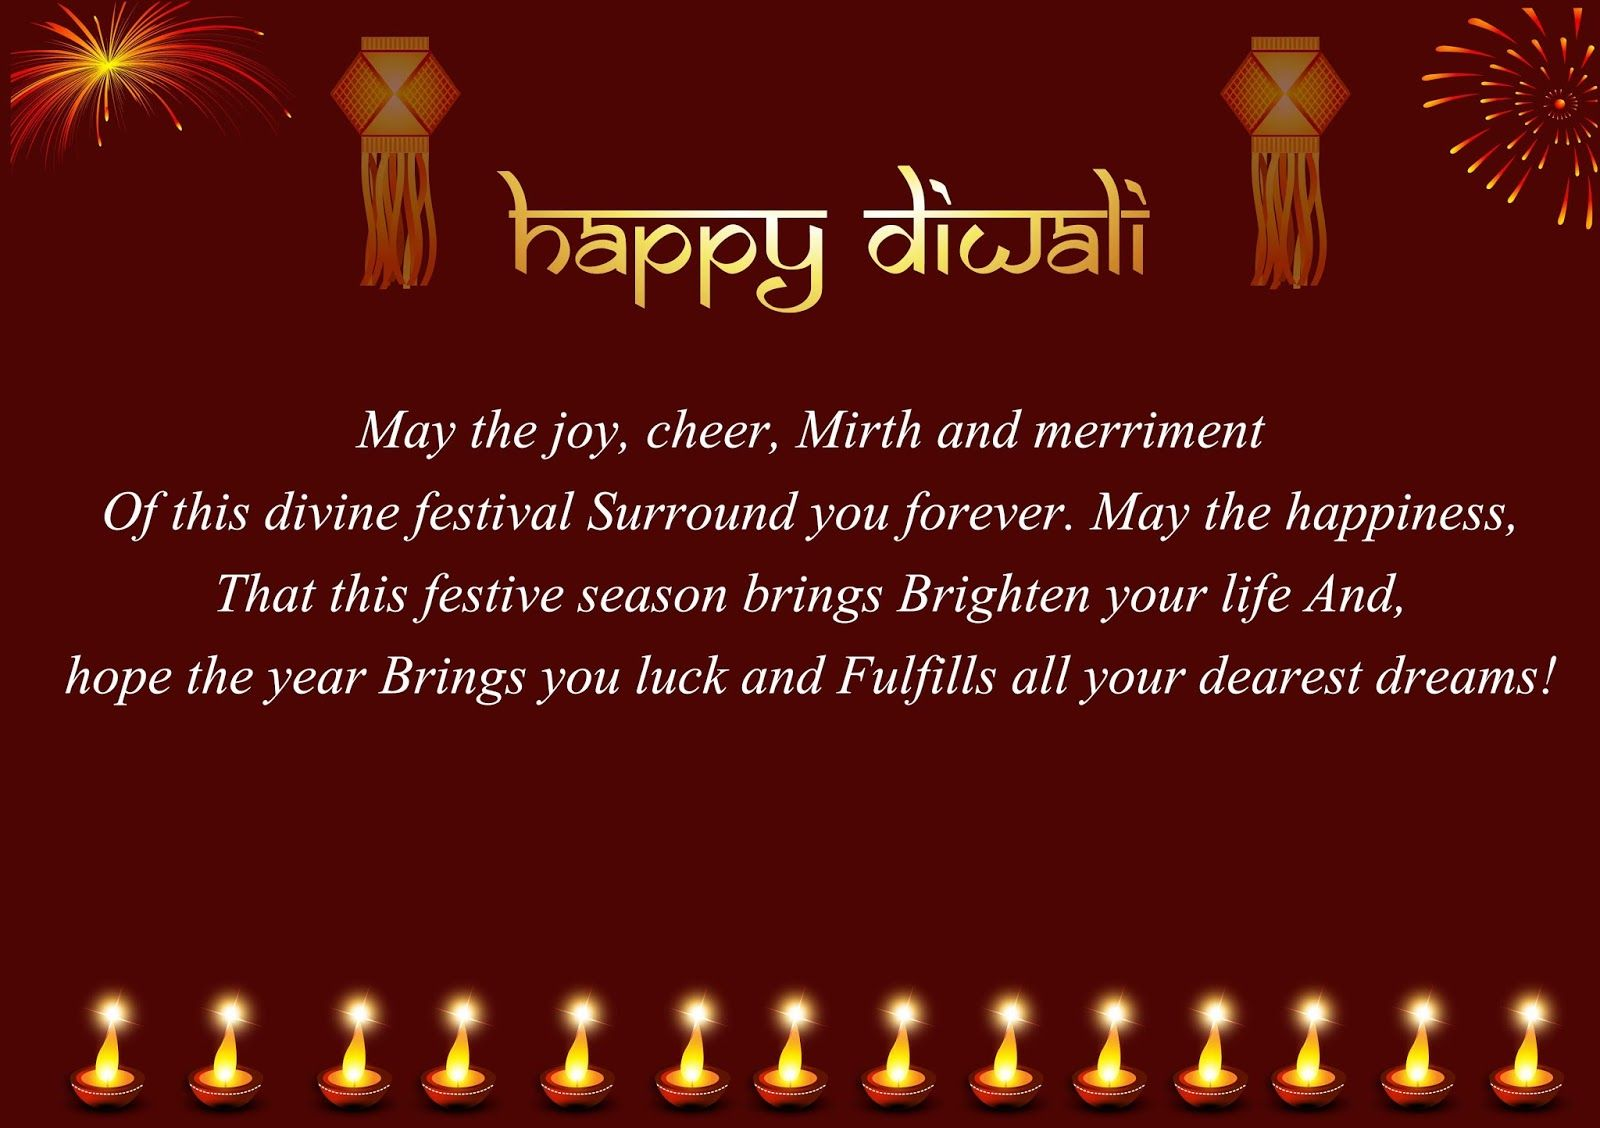 Happy Diwali Image Wishes Happy Diwali Pictures Wishes